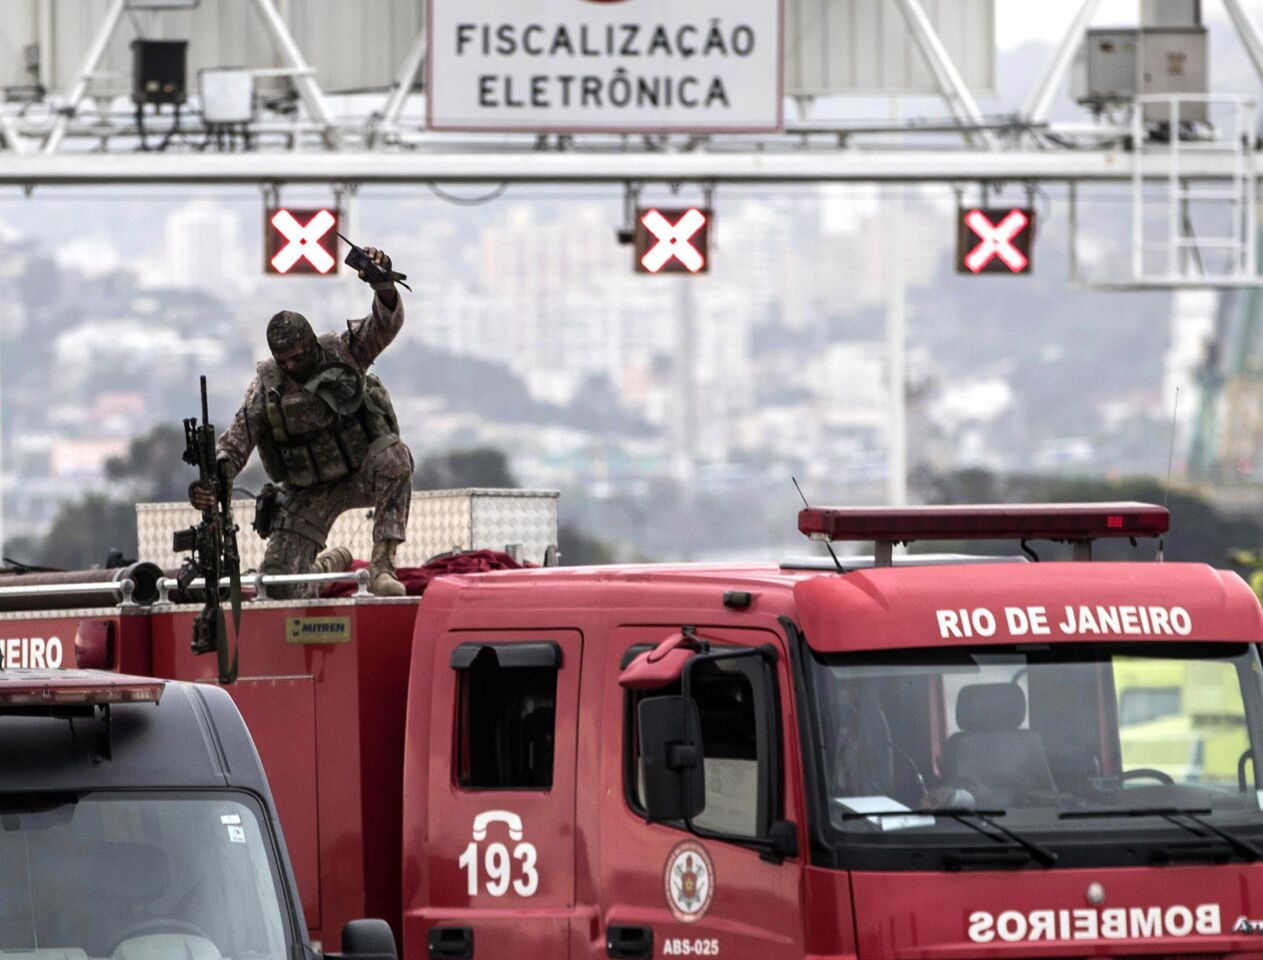 After hijacking a bus, armed man fatally shot by police in Brazil